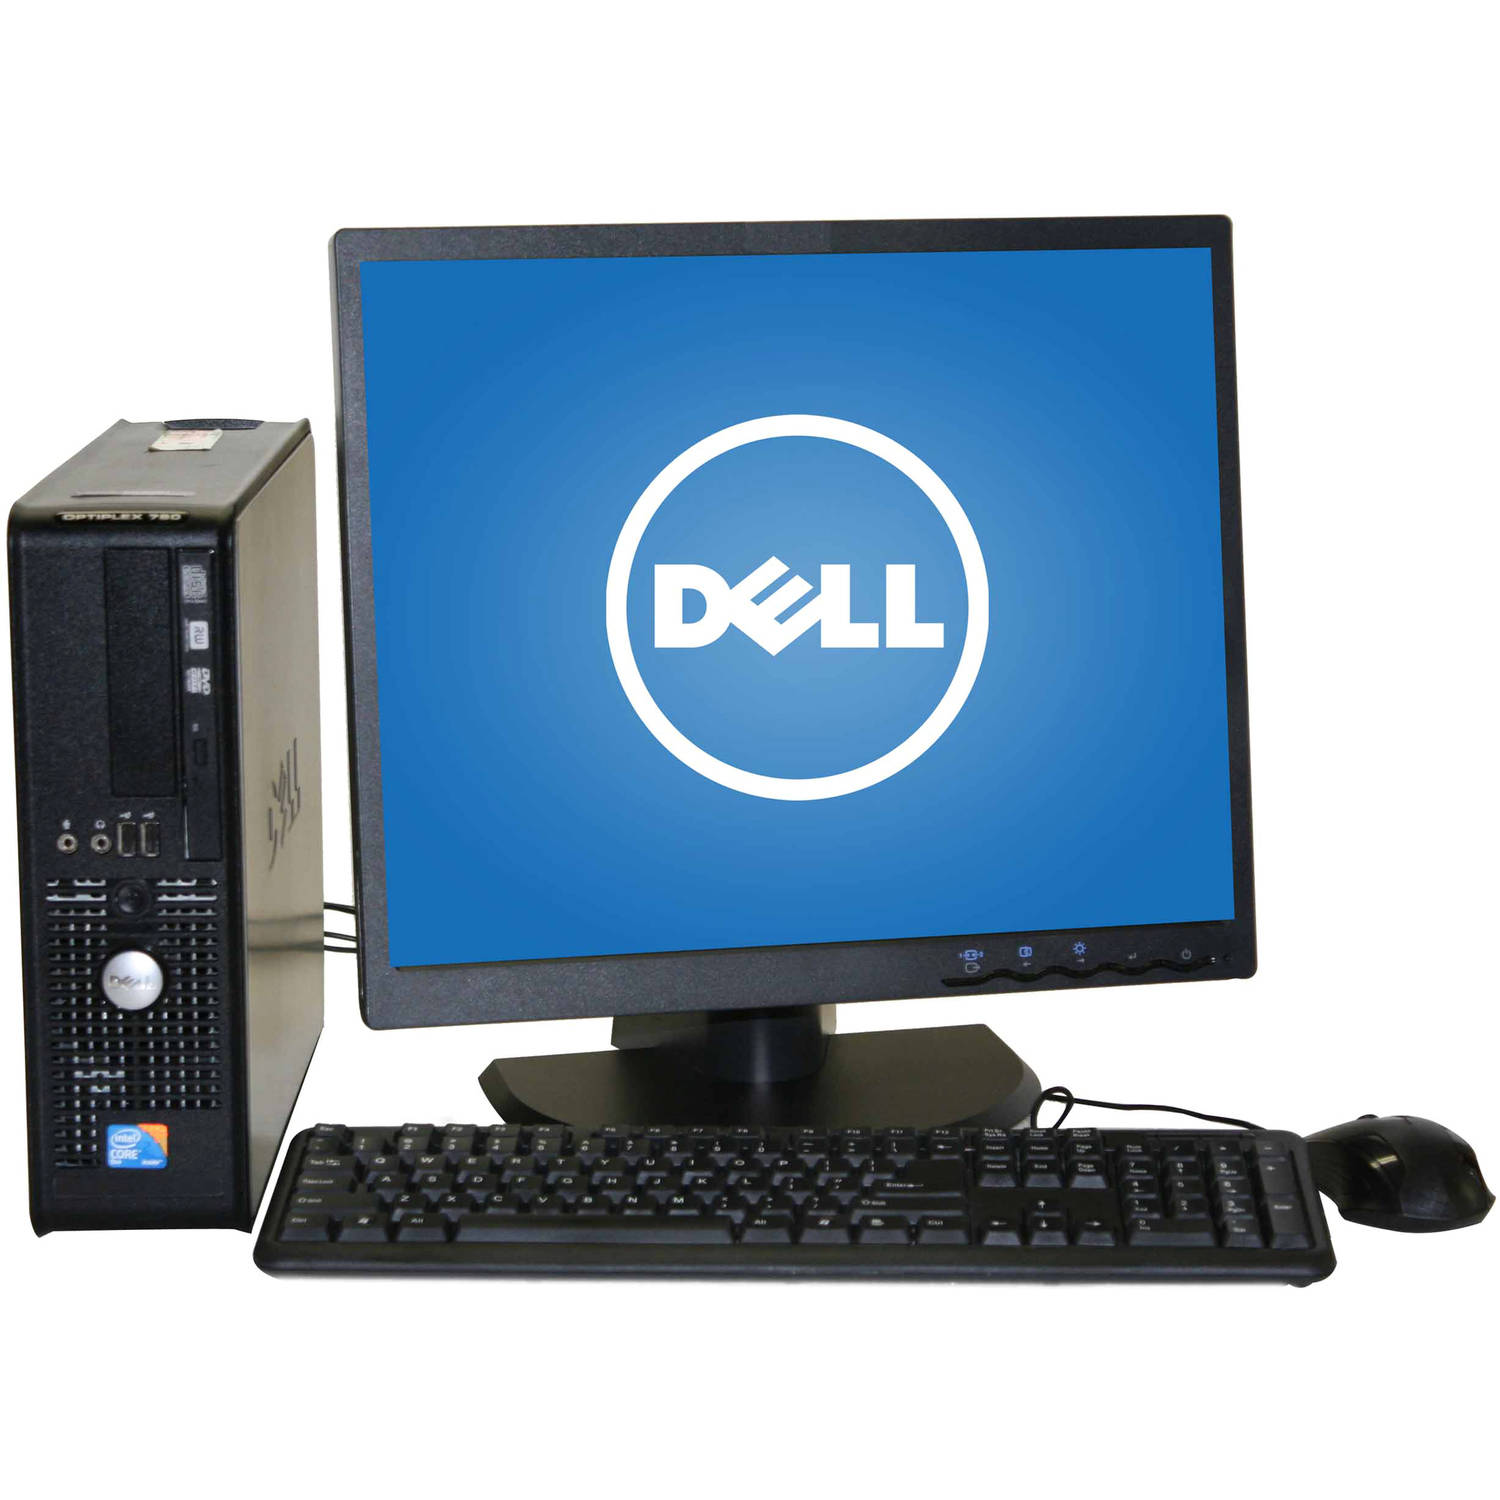 "Refurbished Dell 780 SFF Desktop PC with Intel Core 2 Duo E8400 Processor, 4GB Memory, 19"" LCD Monitor, 250GB Hard Drive and Windows 10 Home"